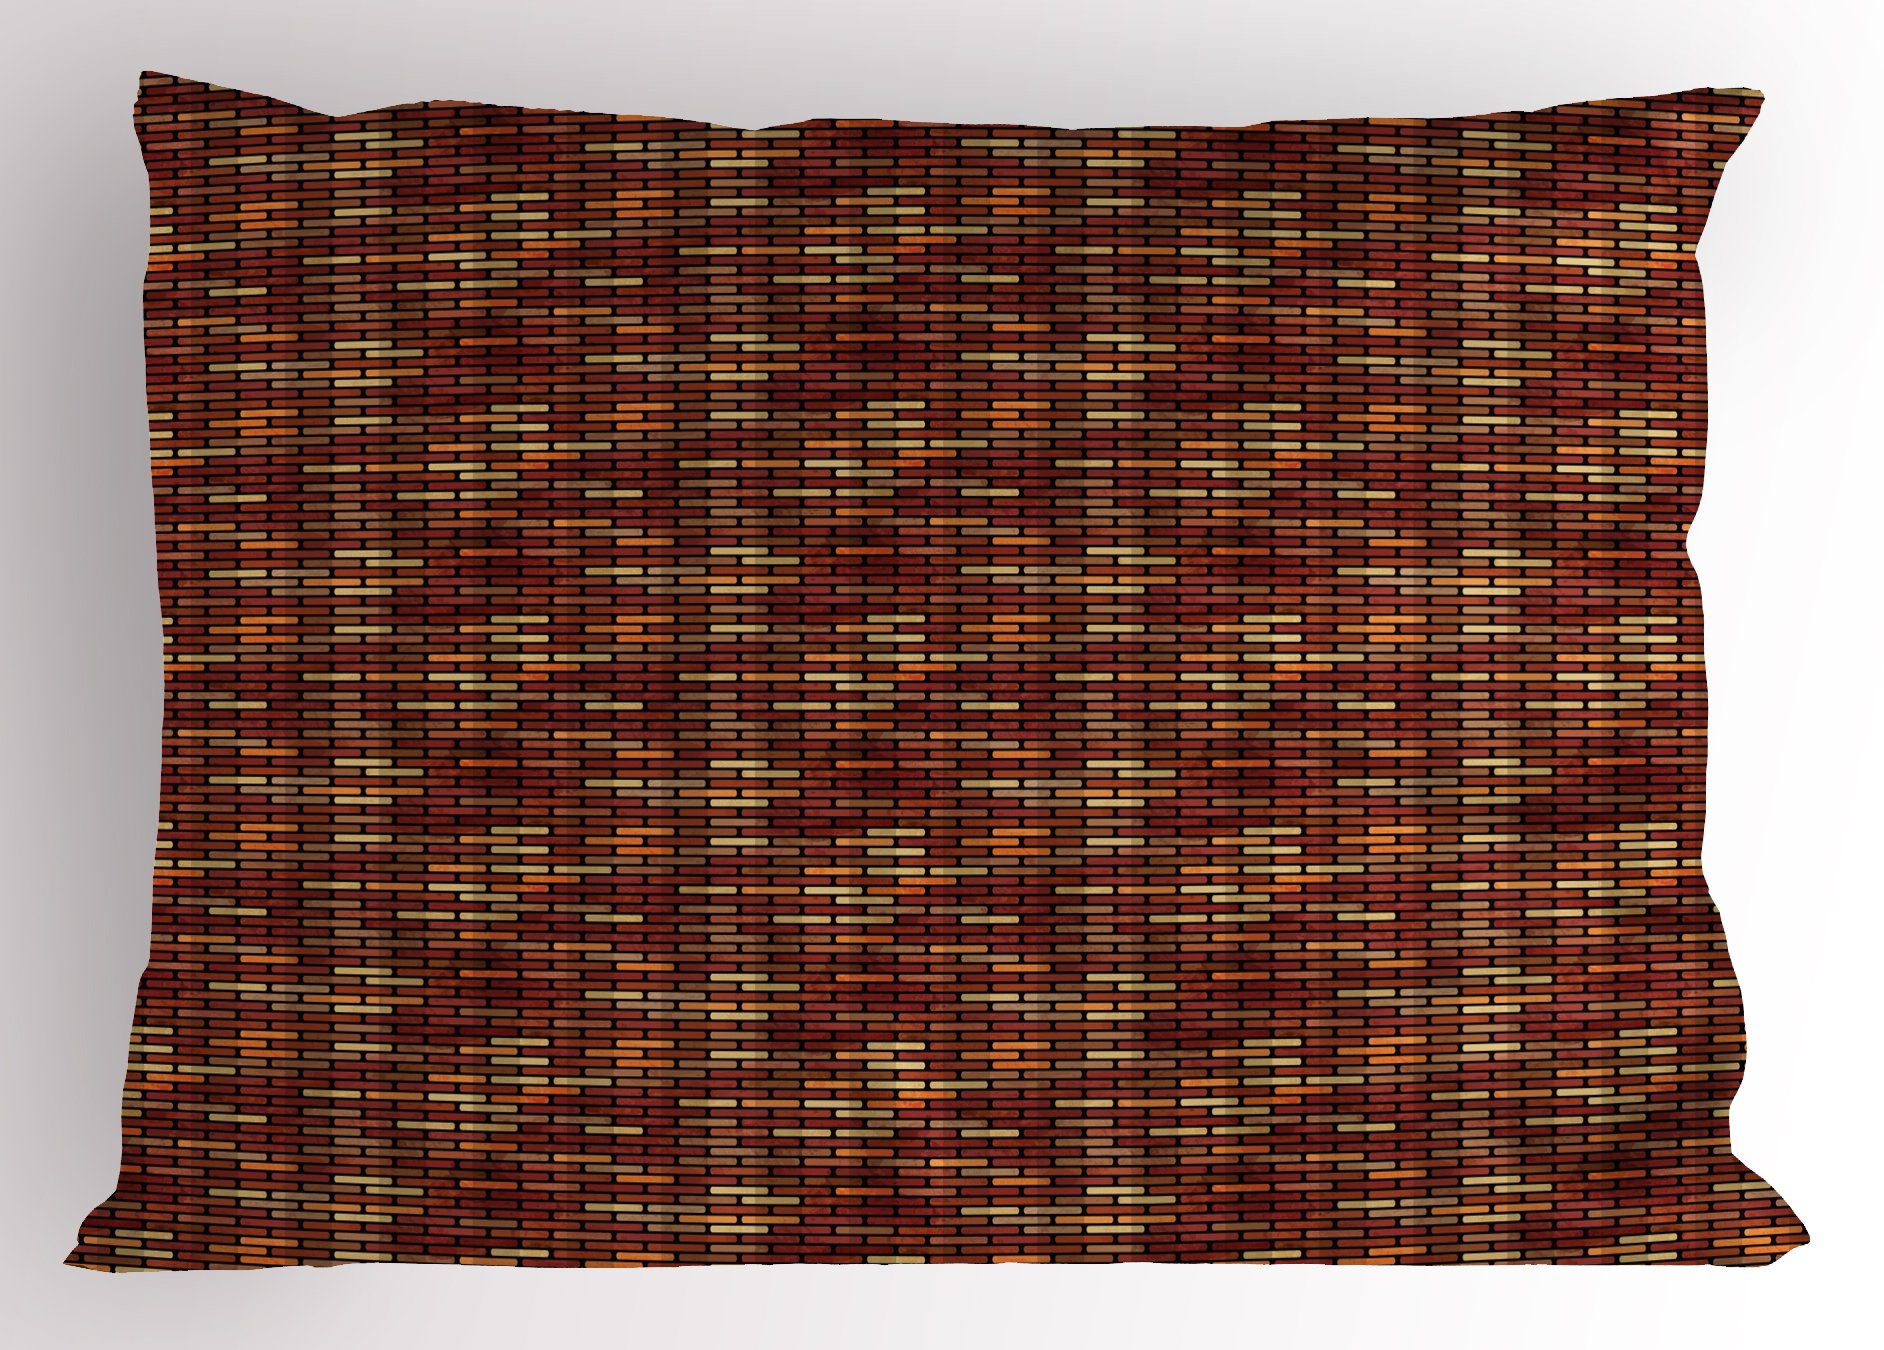 Ambesonne Grunge Pillow Sham, Brick Wall with Earthy Colors Architecture Themed Abstract Digital Illustration, Decorative Standard King Size Printed Pillowcase, 36 X 20 inches, Multicolor